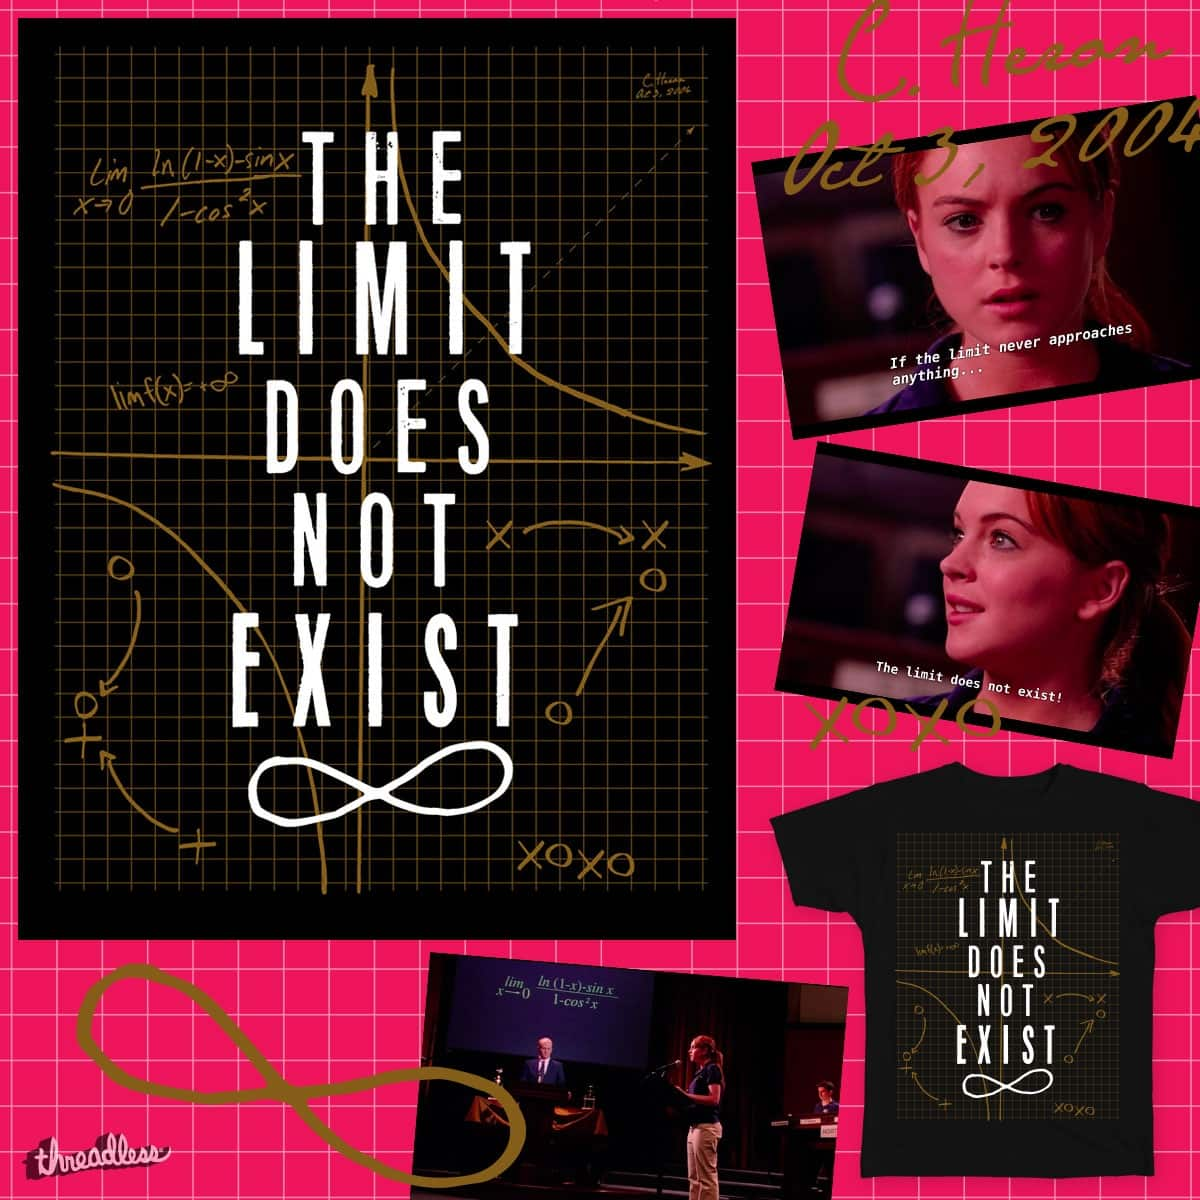 THE LIMIT DOES NOT EXIST by MrRtist21 on Threadless